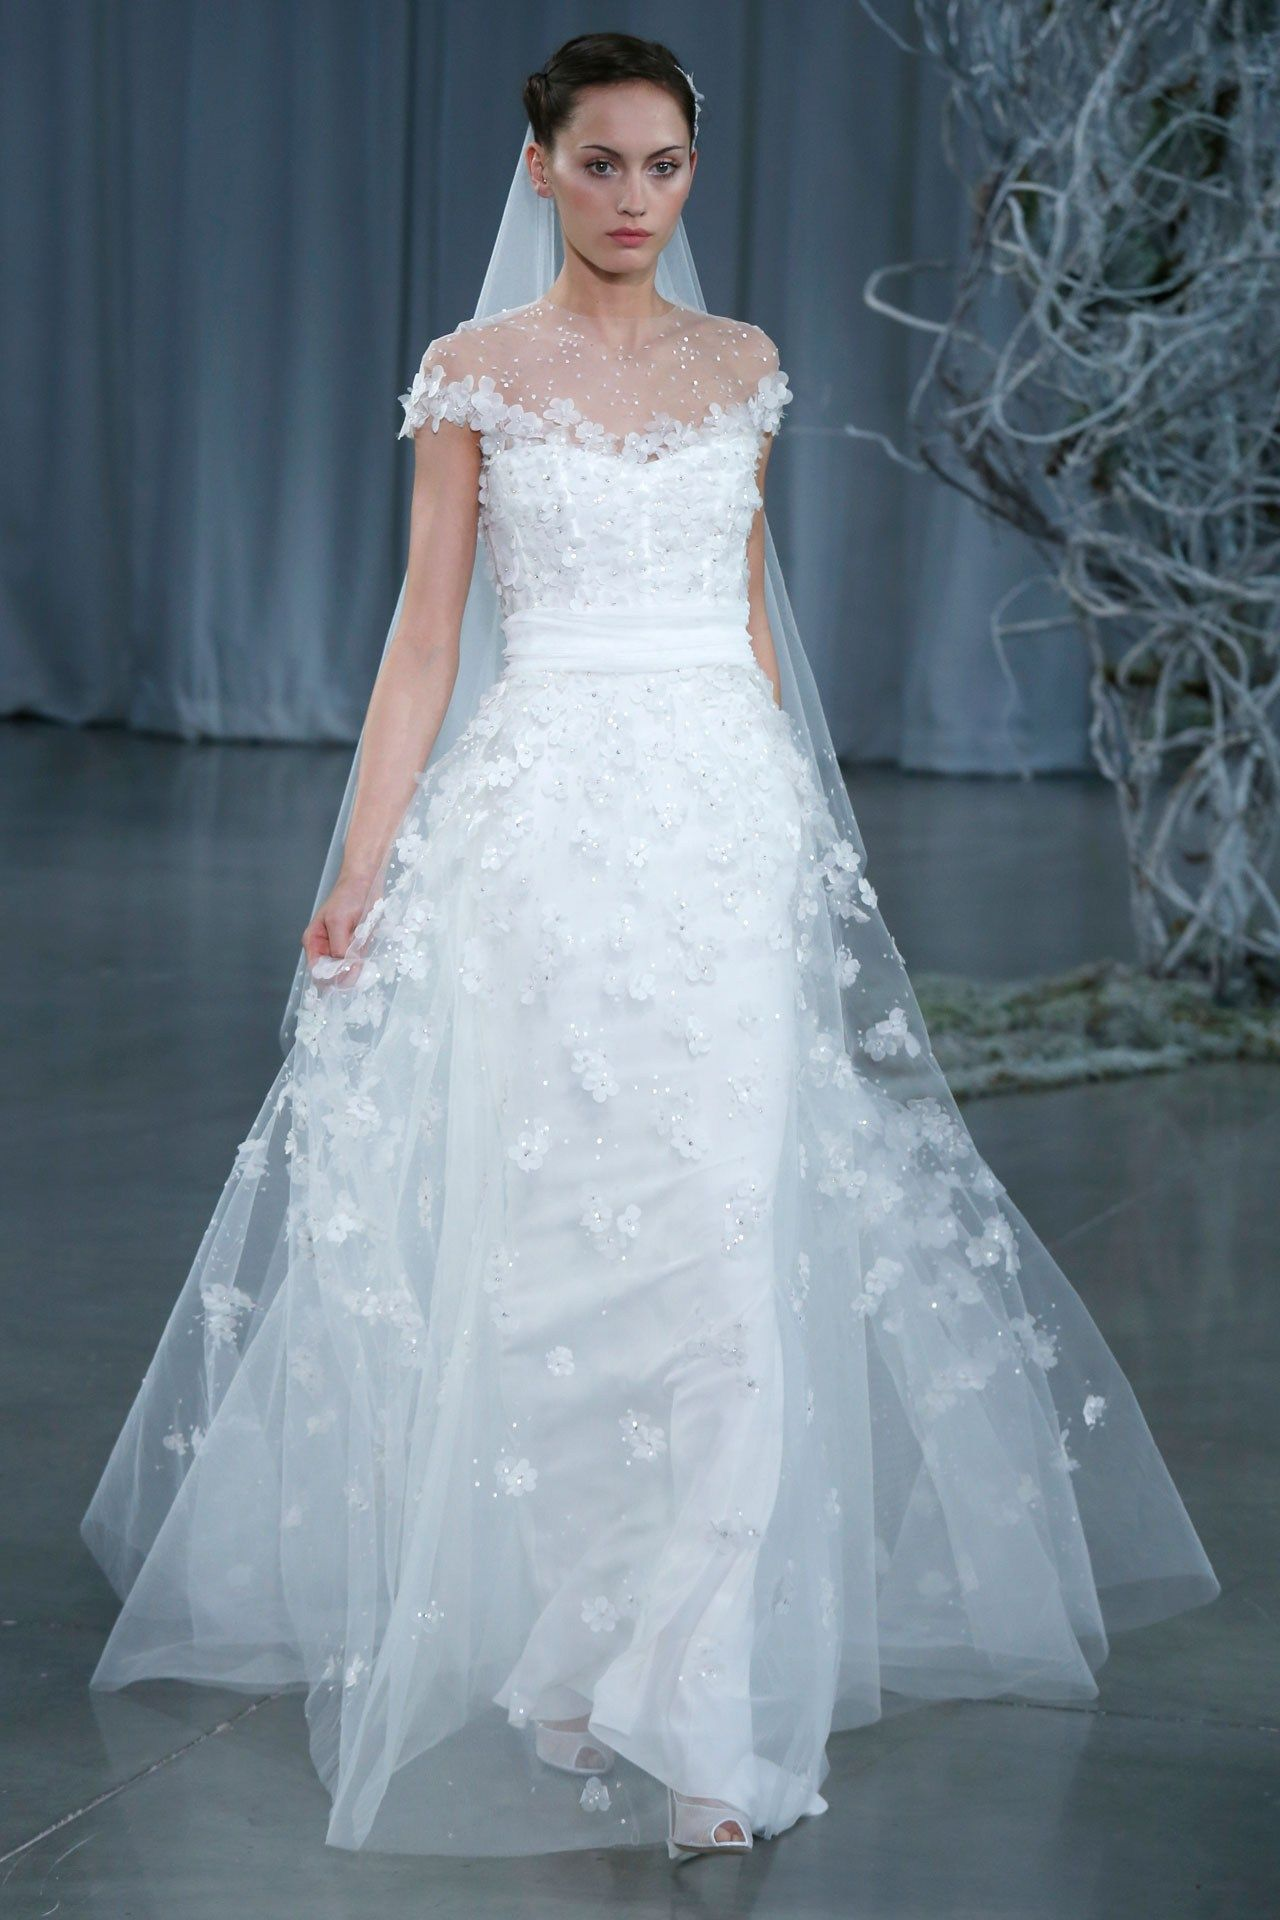 Wedding Dresses - The Ultimate Gallery (BridesMagazine.co.uk) | Lace ...